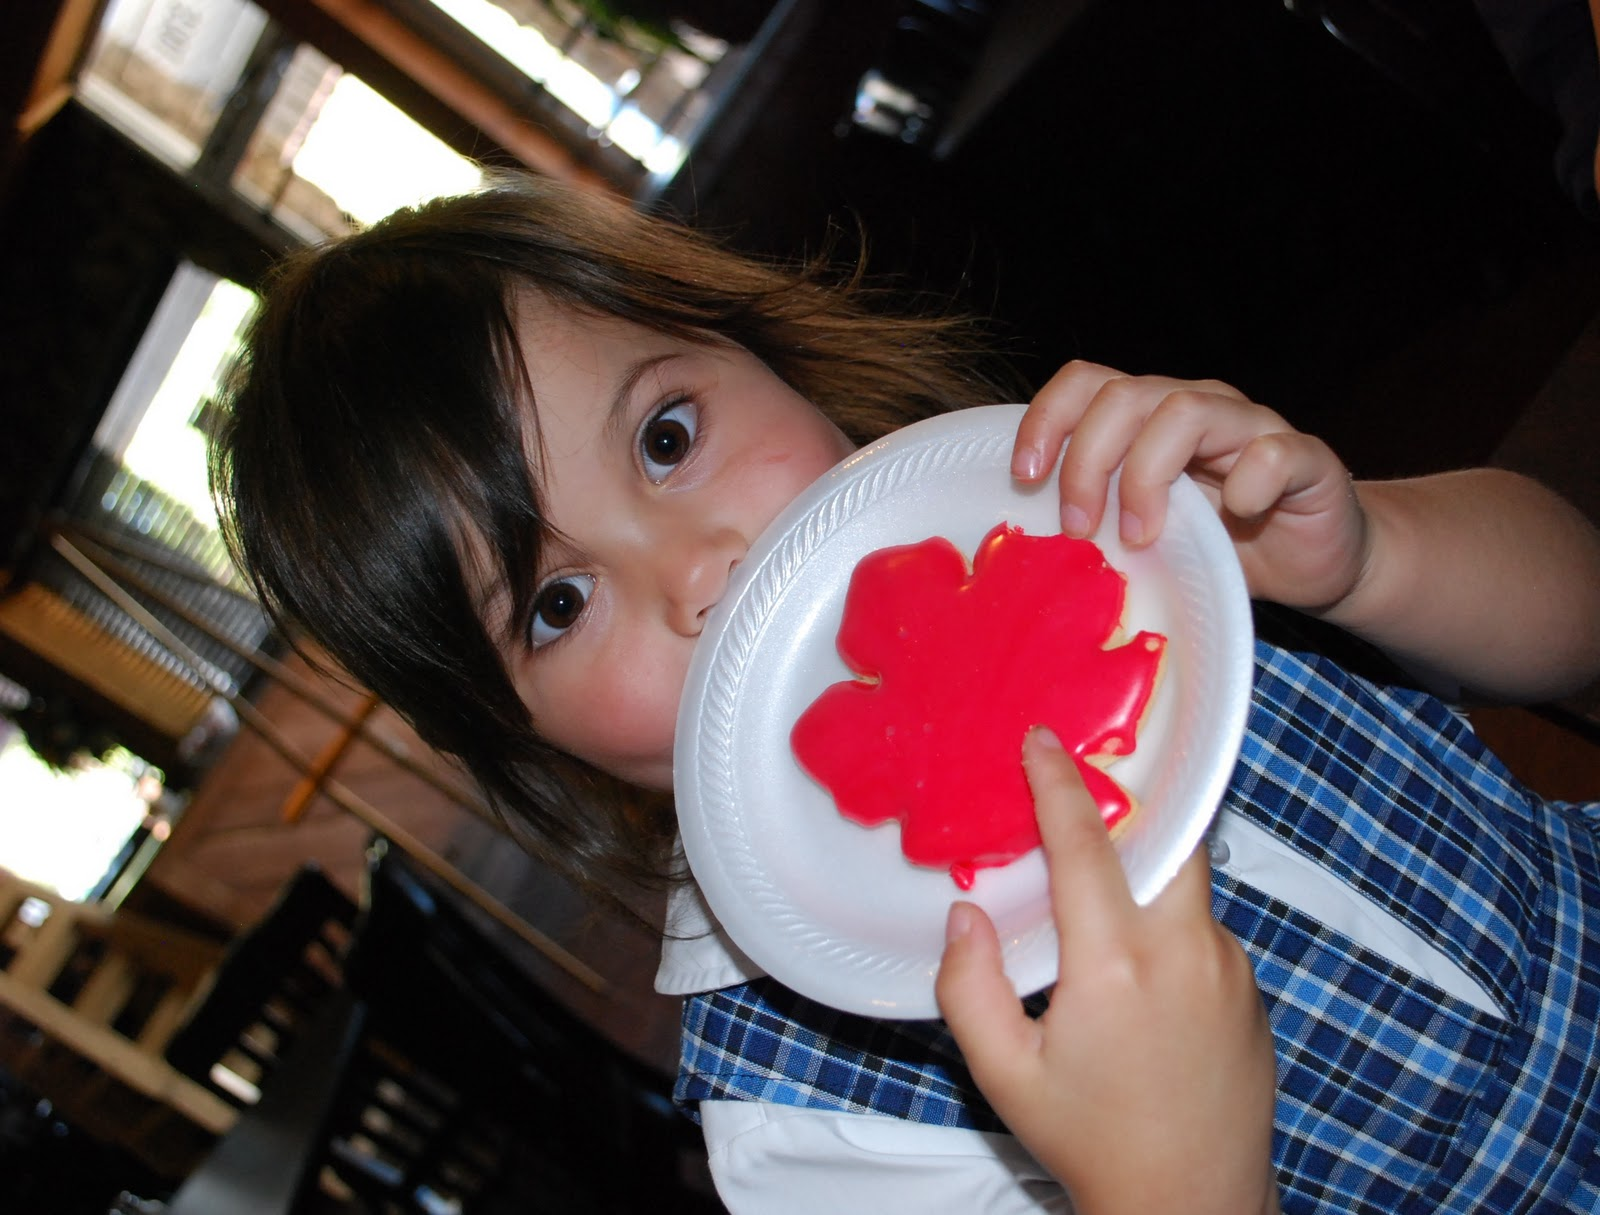 Little Bridgy chose a red frosted cookie from Ingrid's